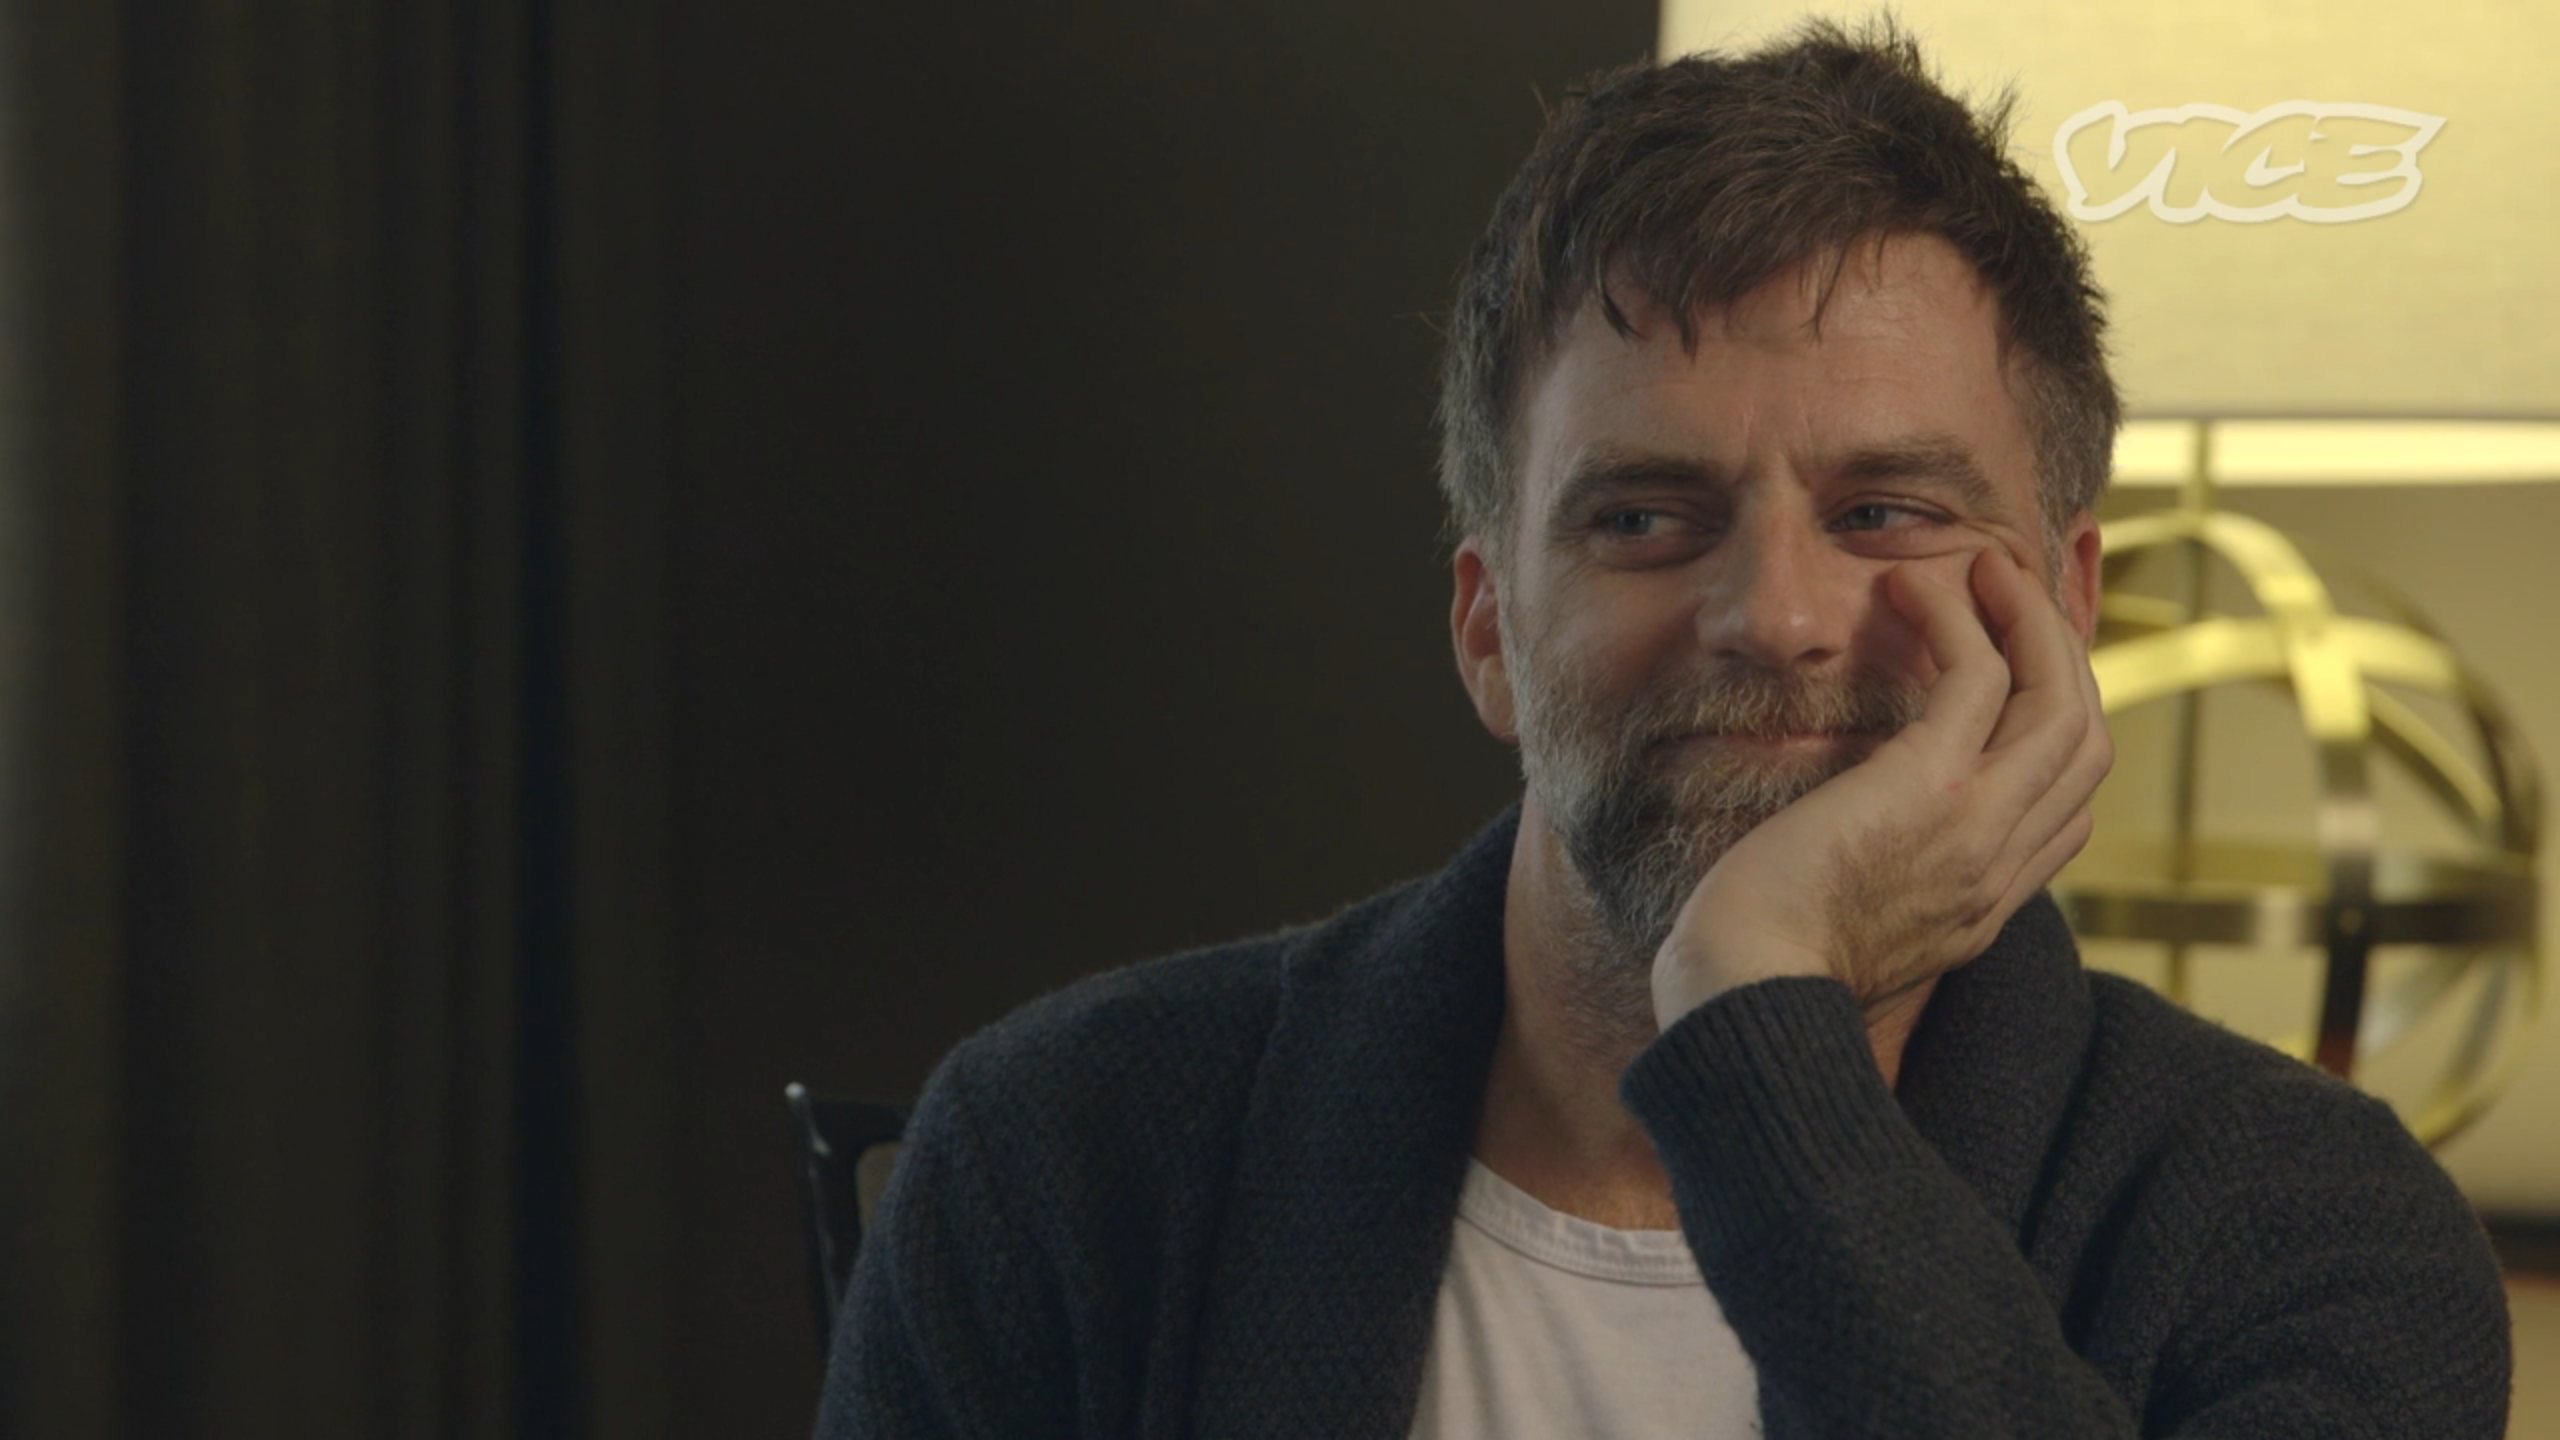 Paul thomas anderson commentary for john holmes documentary